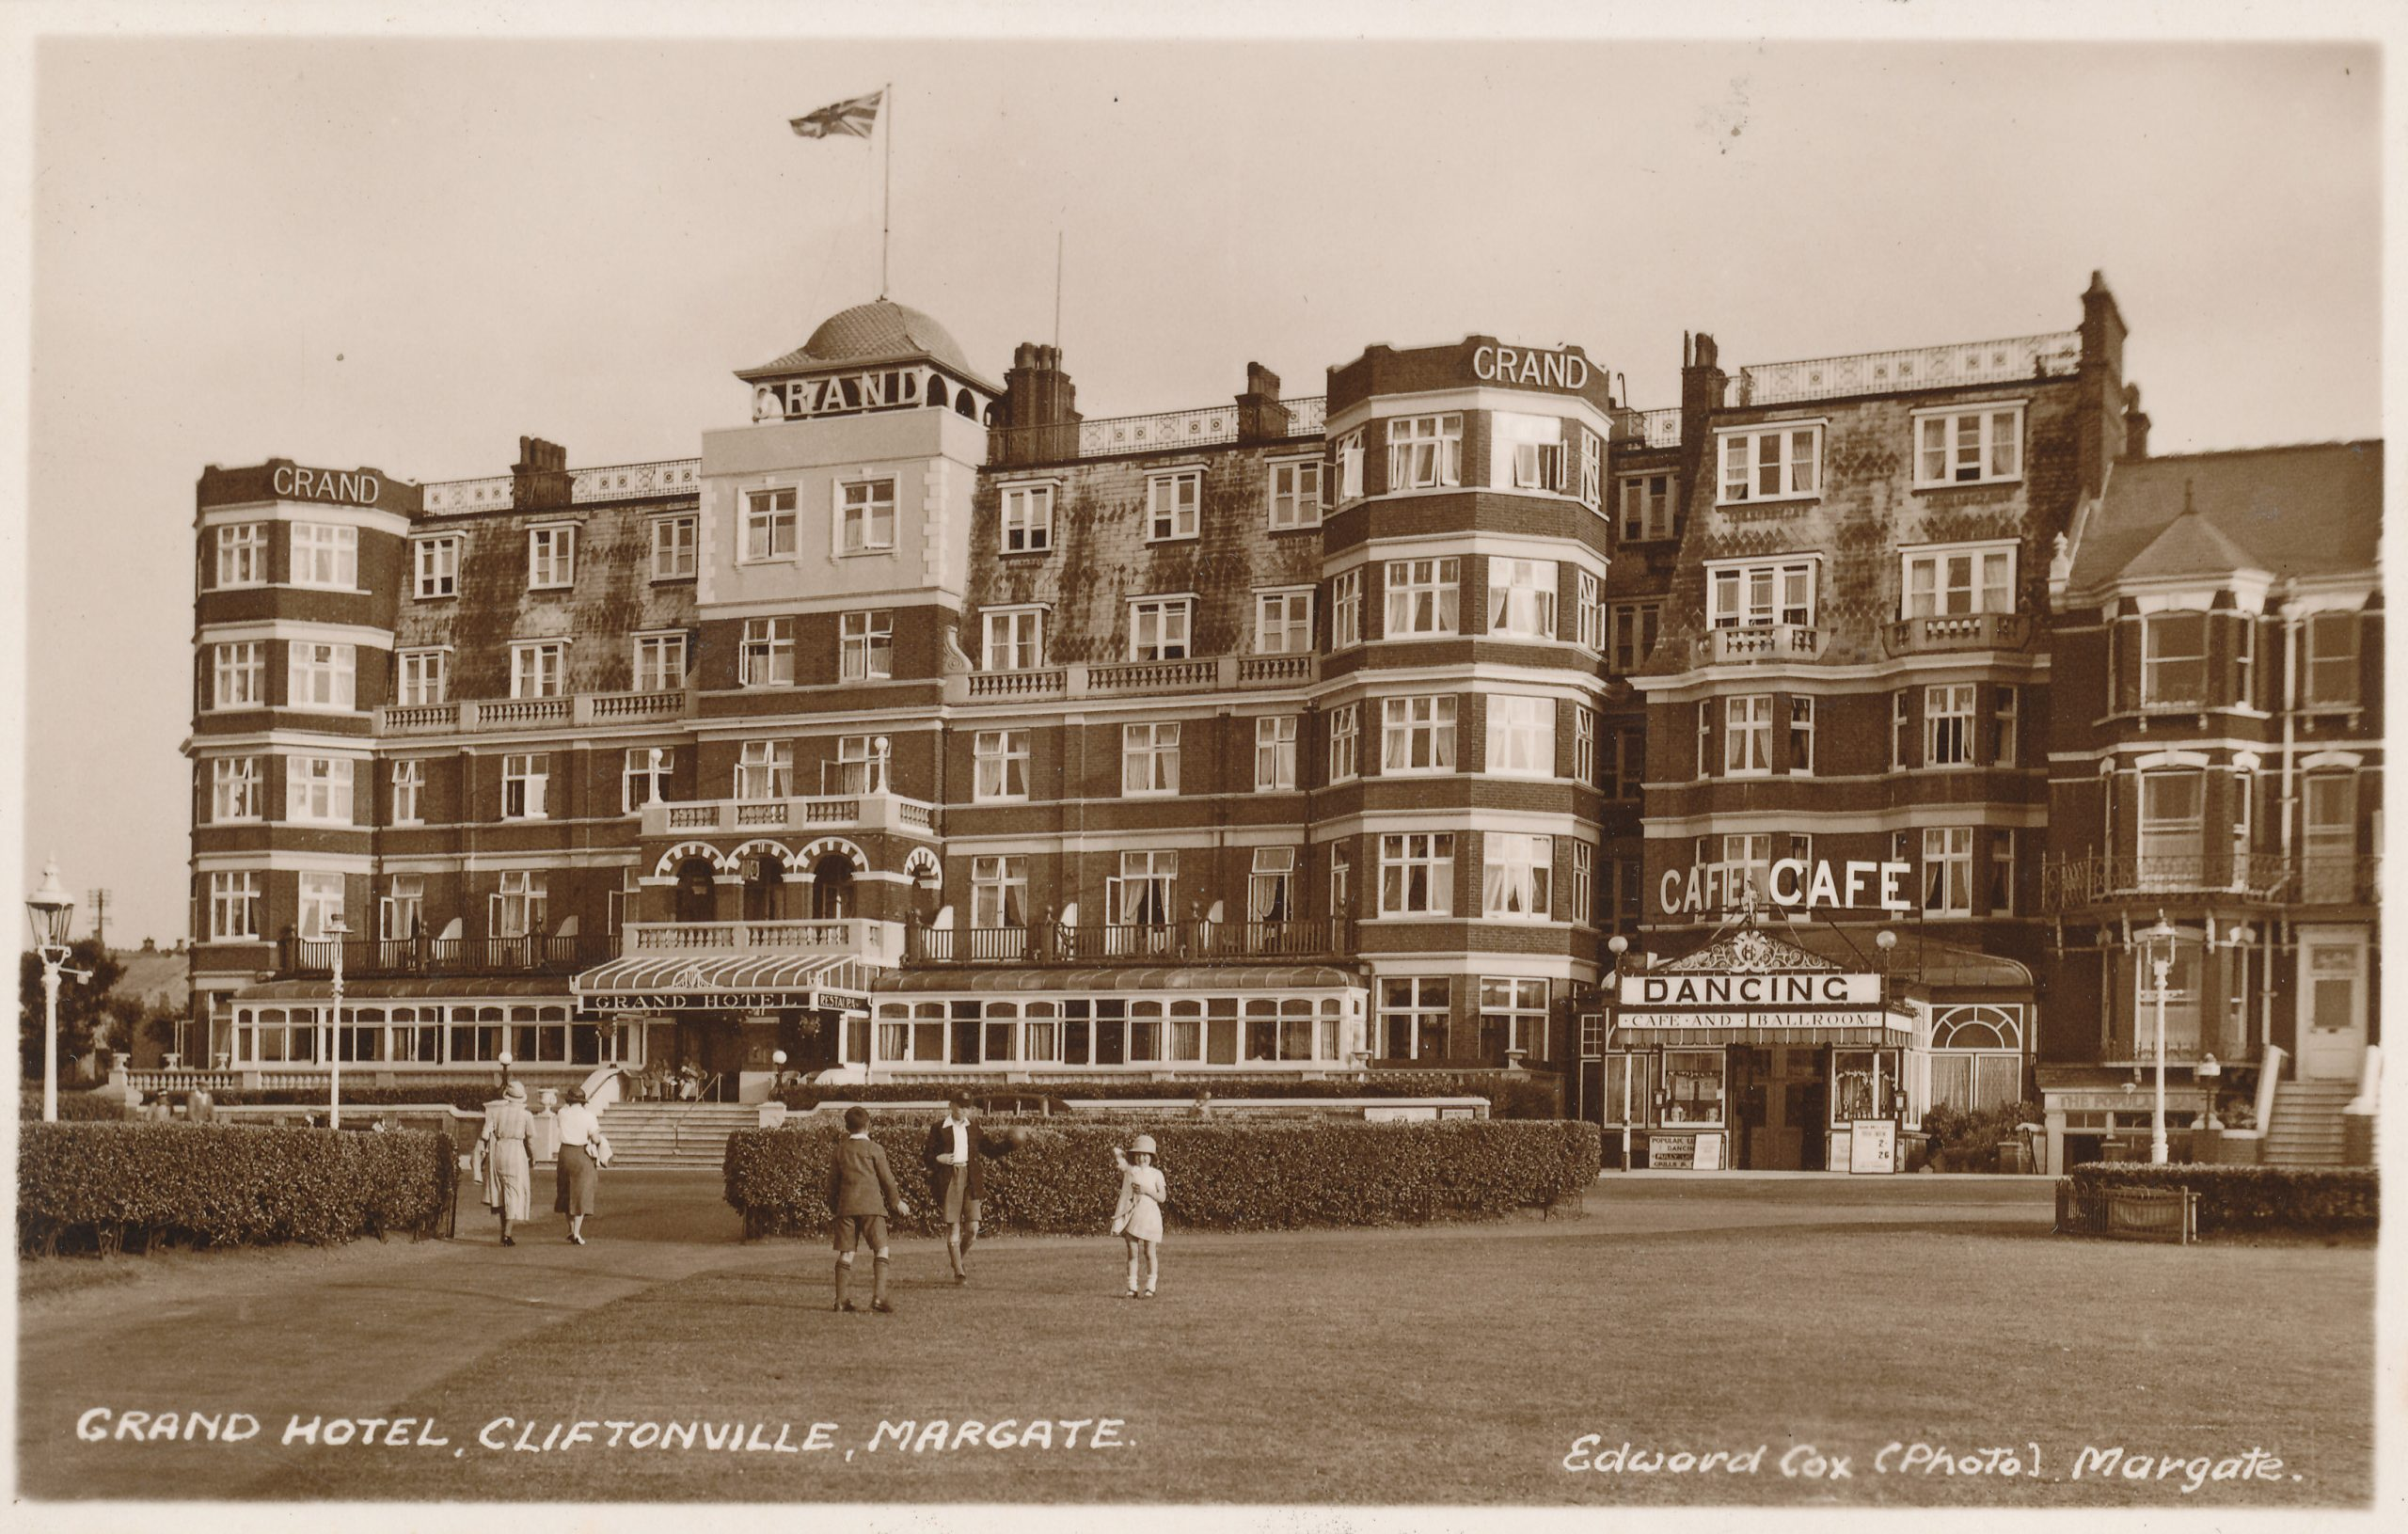 The Grand Hotel, Cliftonville, Margate. Venue for the Margate tournaments.